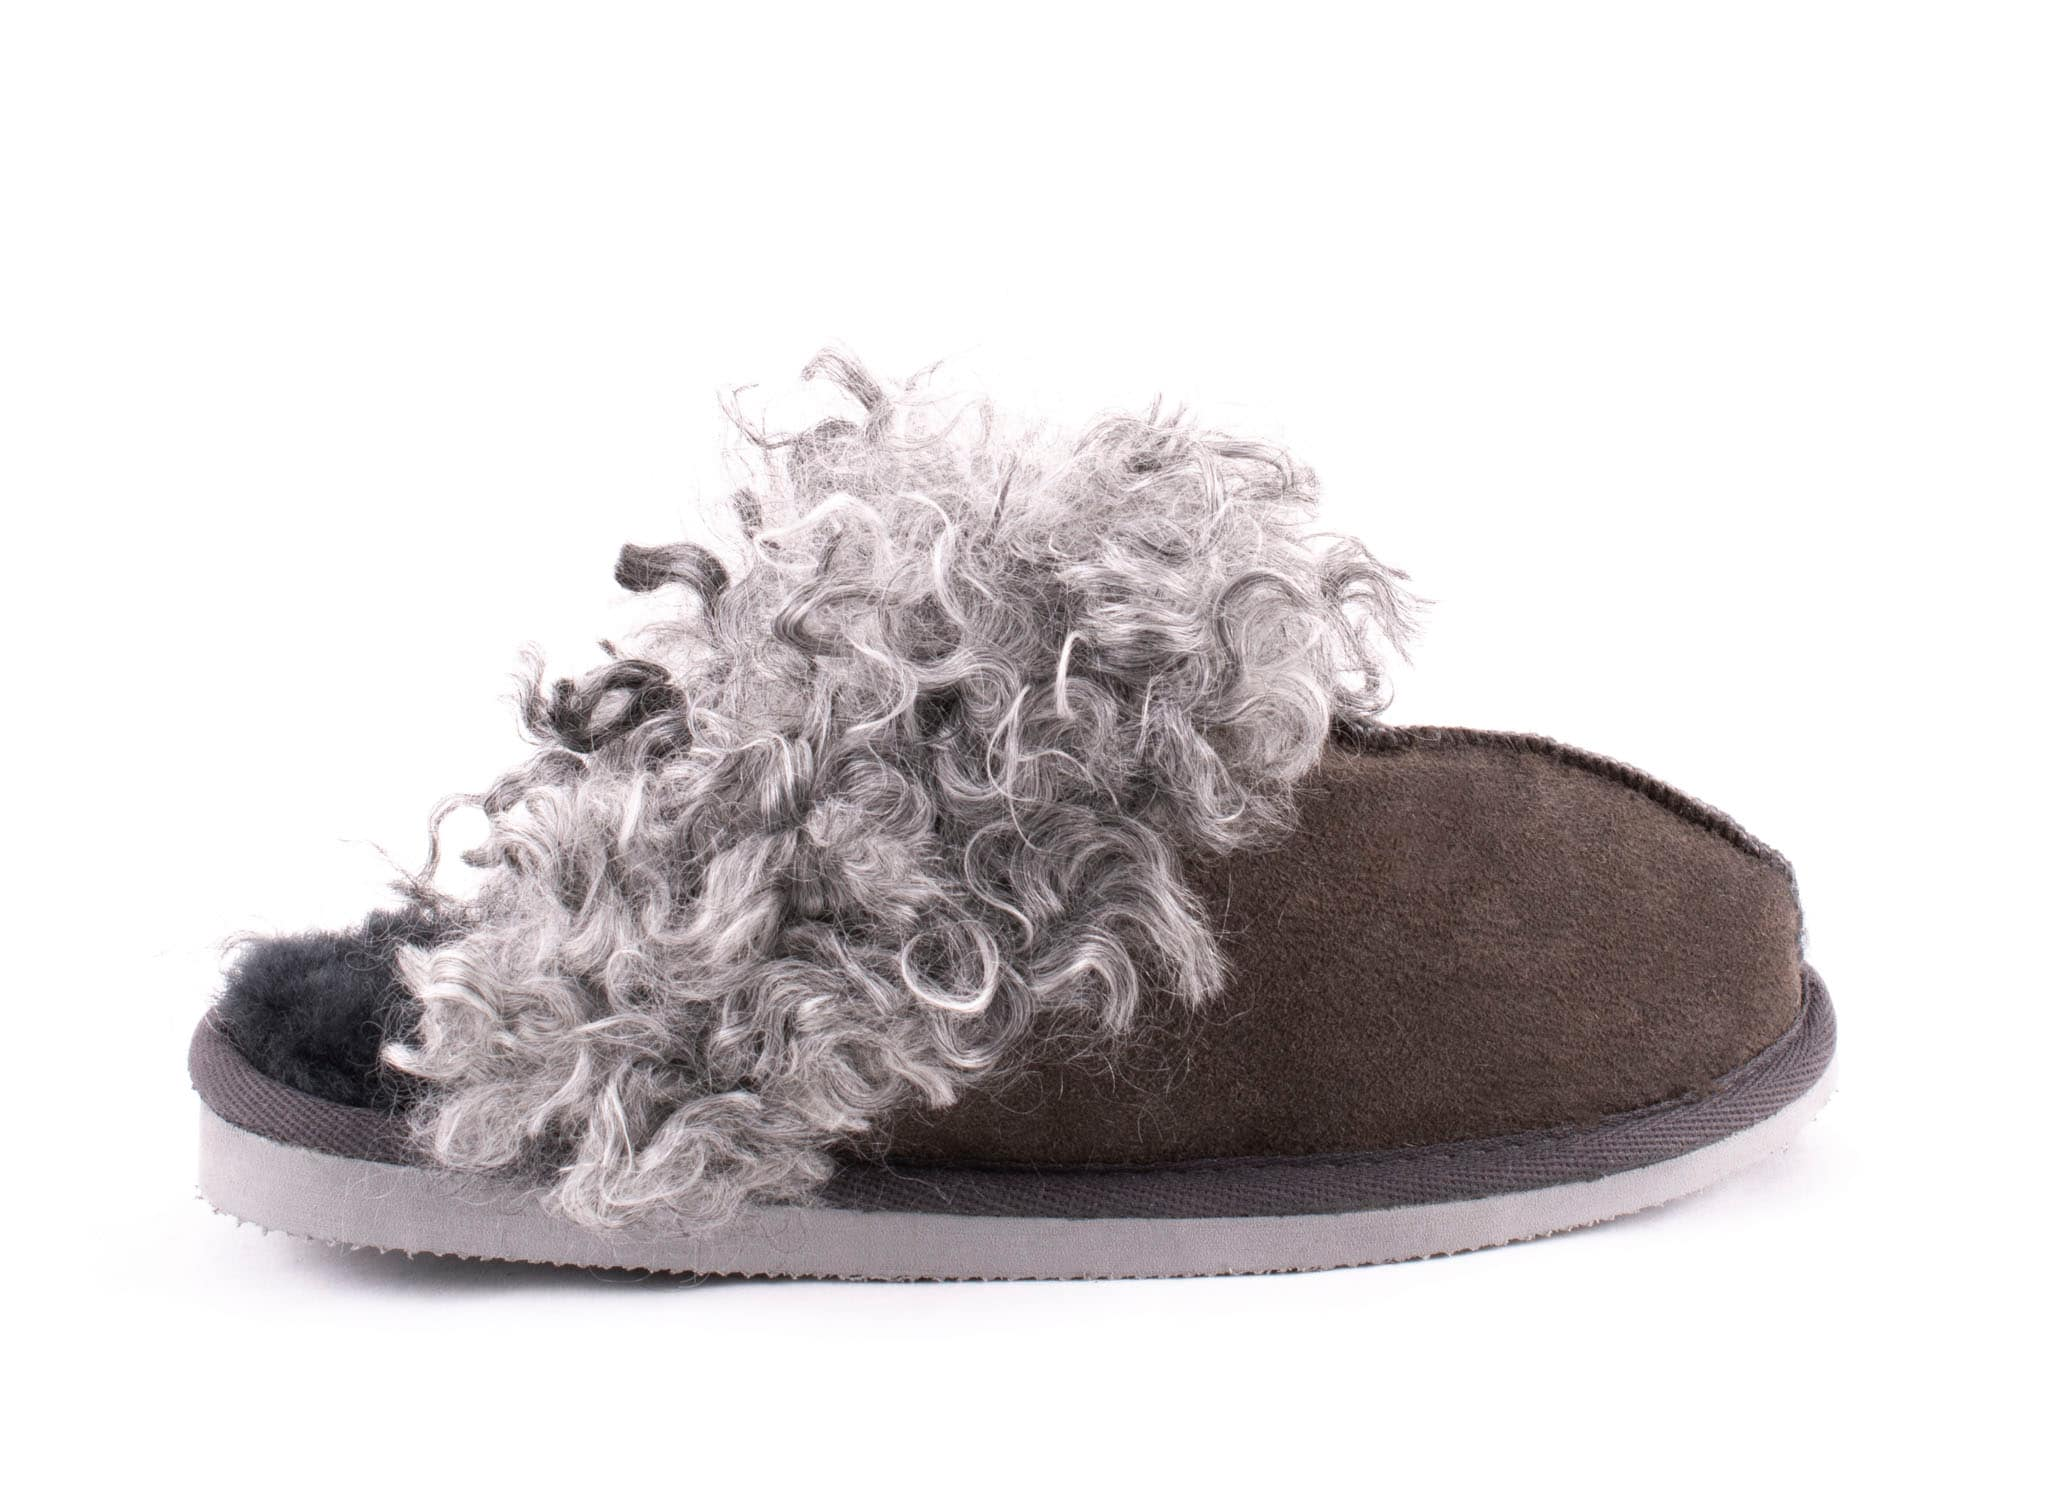 Tuva sheepskin slippers